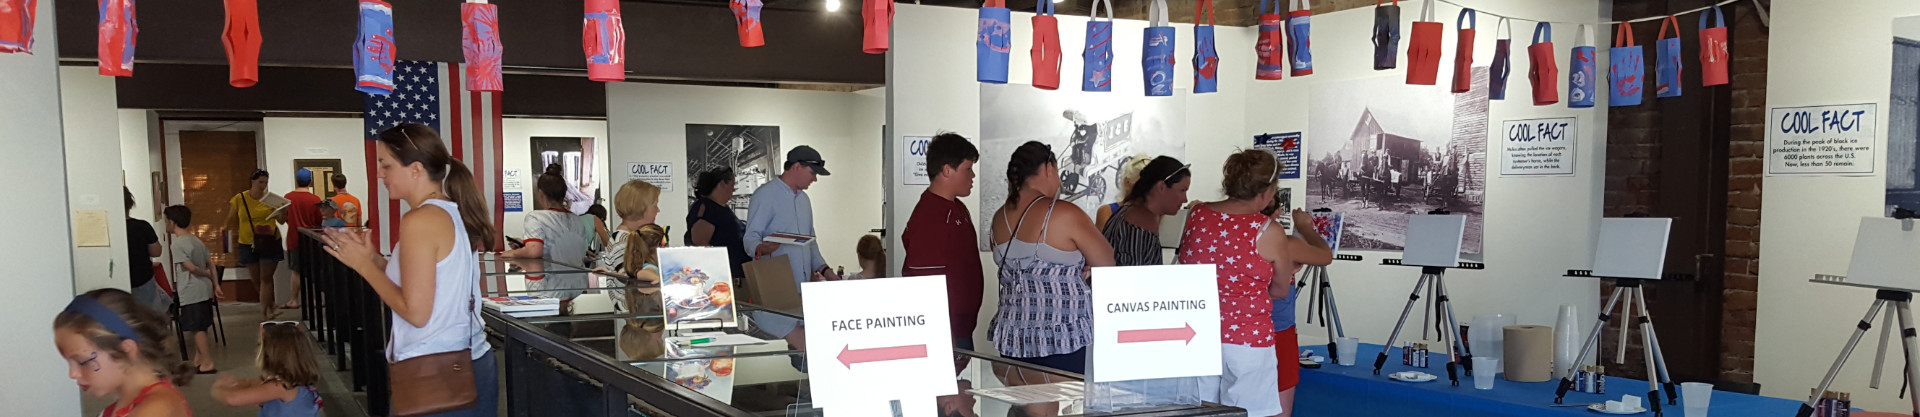 4th of July Event at the Apalachicola Center of Art and History